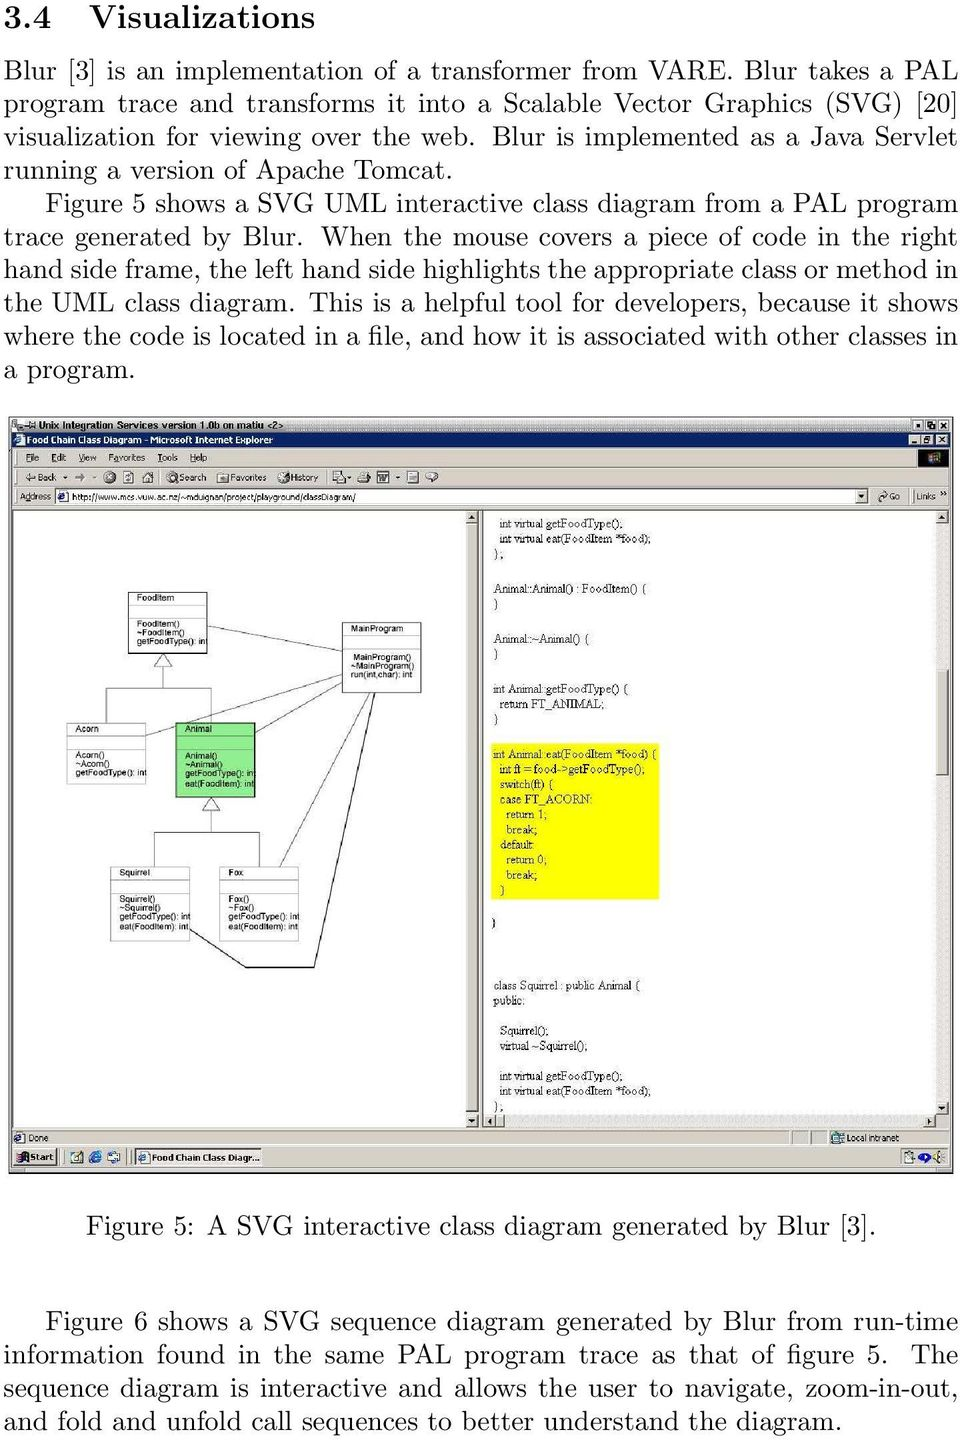 Blur is implemented as a Java Servlet running a version of Apache Tomcat. Figure 5 shows a SVG UML interactive class diagram from a PAL program trace generated by Blur.